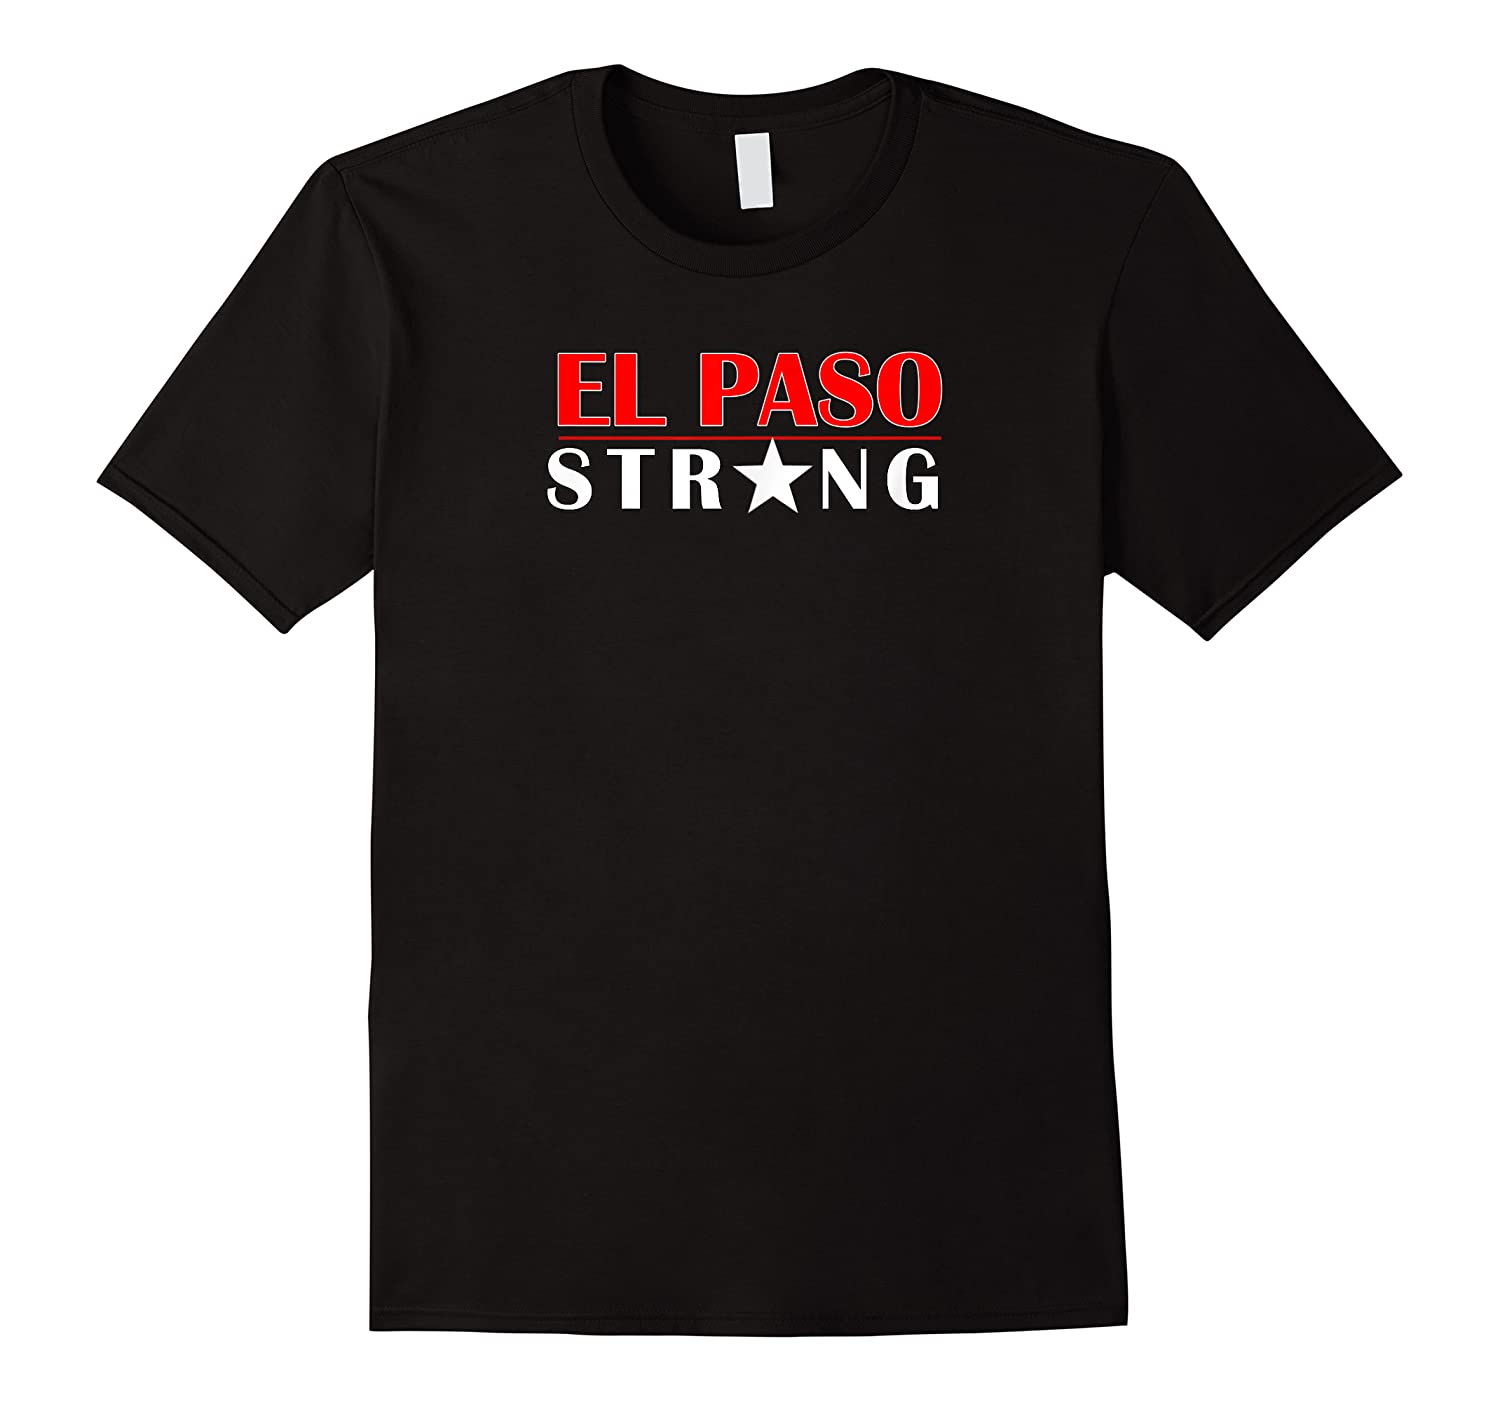 For Support And Shirts